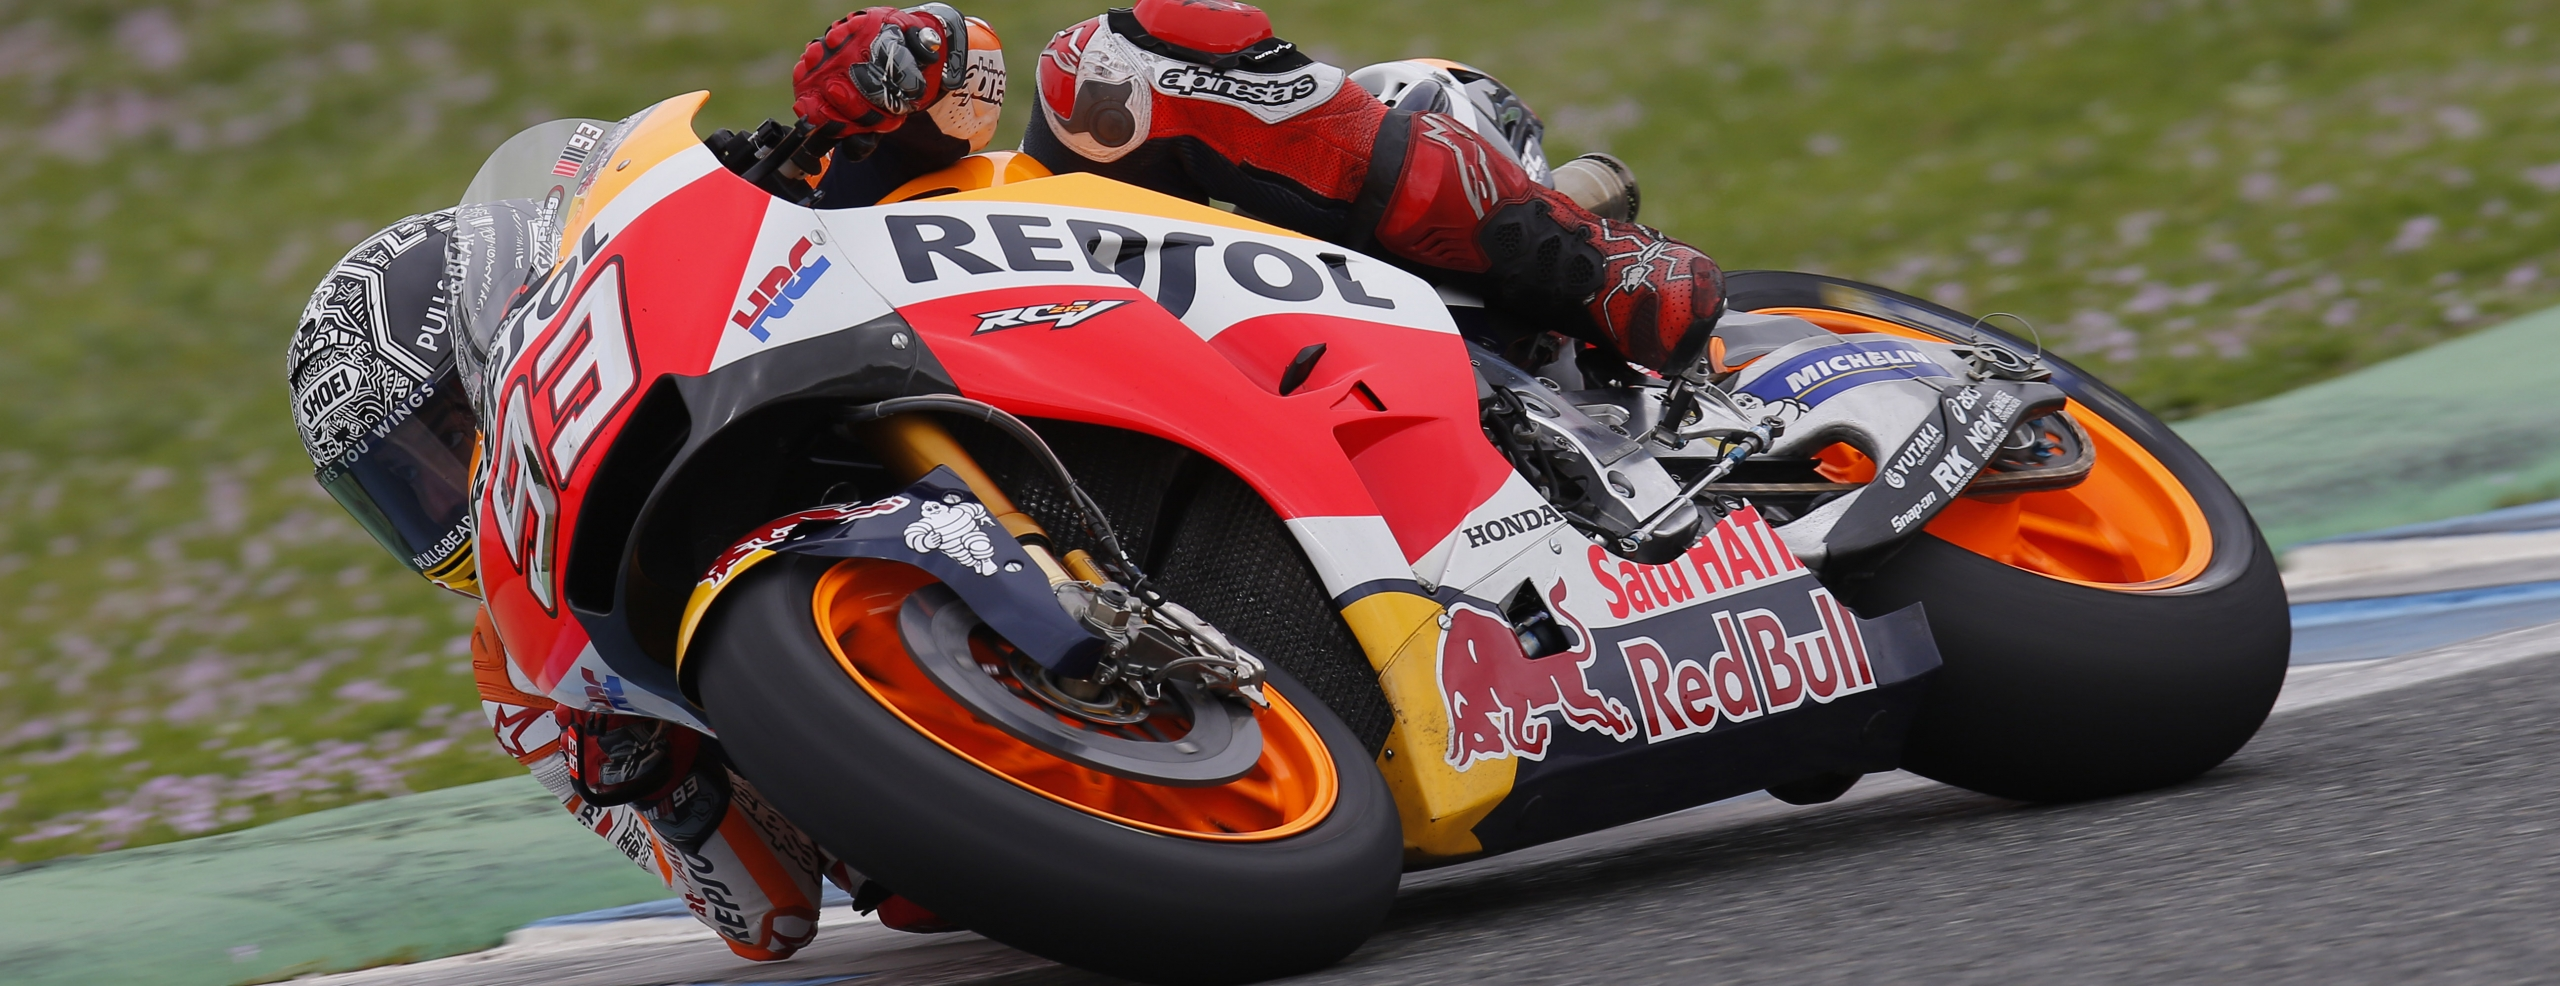 Marquez and Pedrosa complete a one-day private test at Jerez